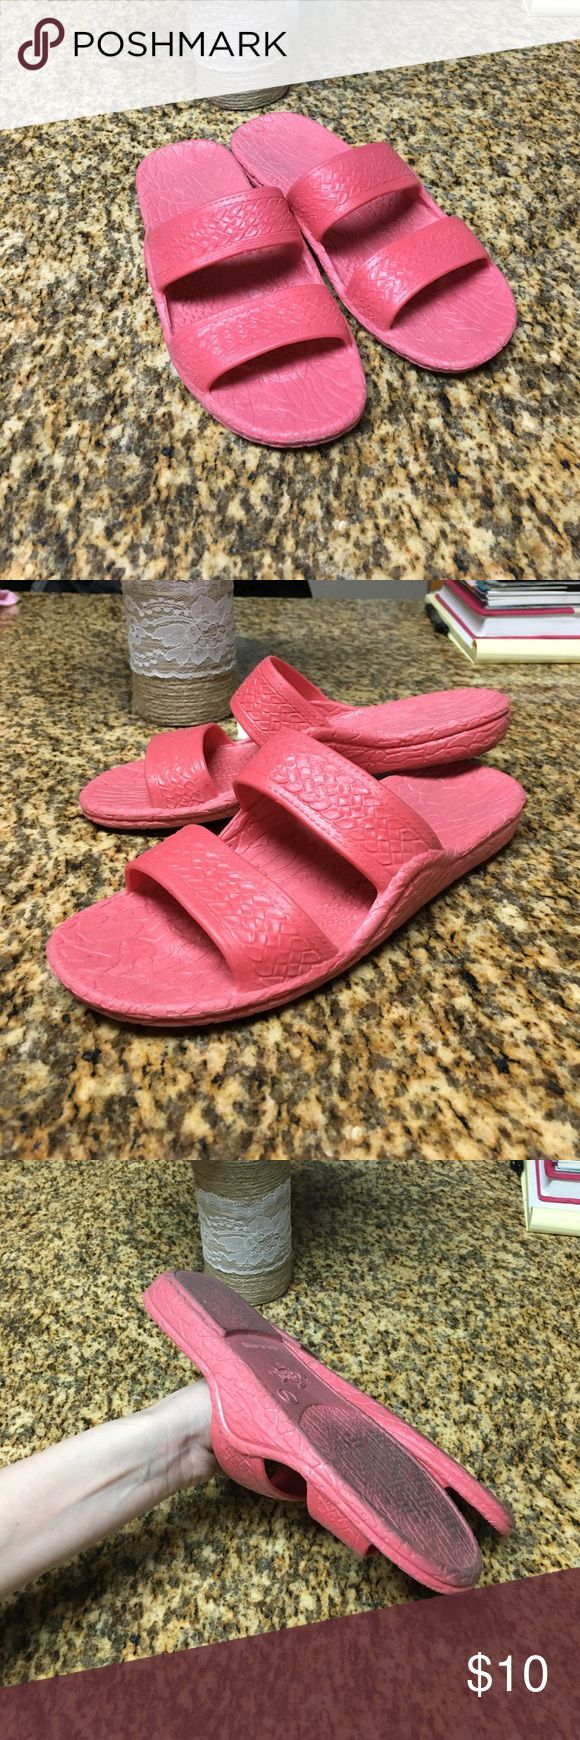 Jesus Sandals Bubblegum pink Jesus sandals! Size 7. Only wore when taking out the trash in my apartment complex 😂💁🏻 so for about a week total maybe. Super adorable and comfy! Perfect for spring and summer! Shoes Sandals